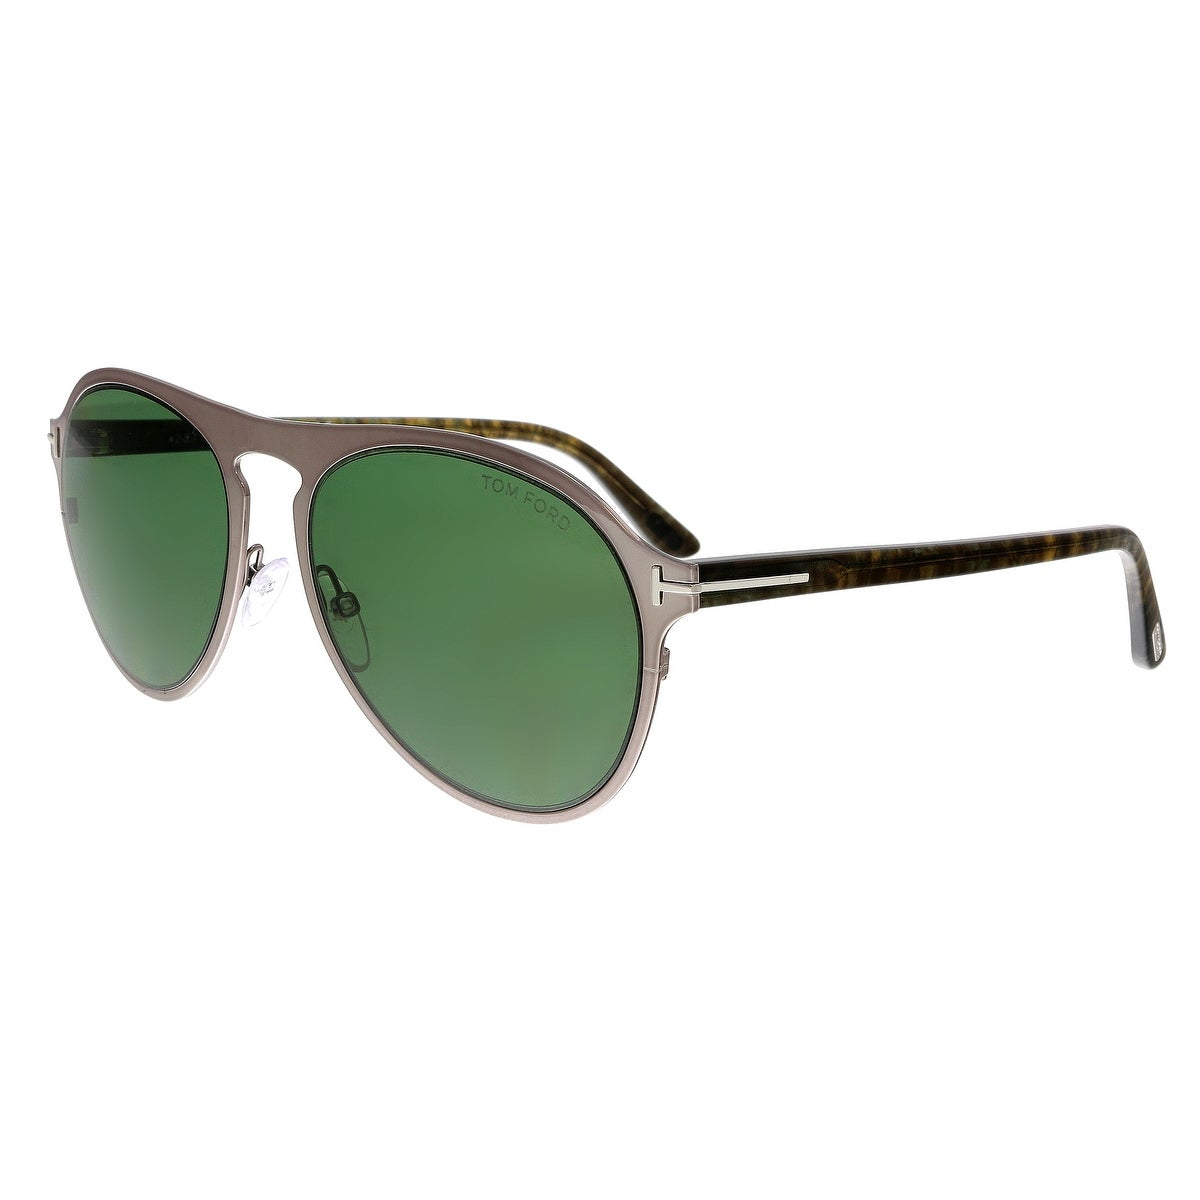 a72928e8a7 Shop Tom Ford FT0525 14N Bradburry Silver Aviator Sunglasses - No ...